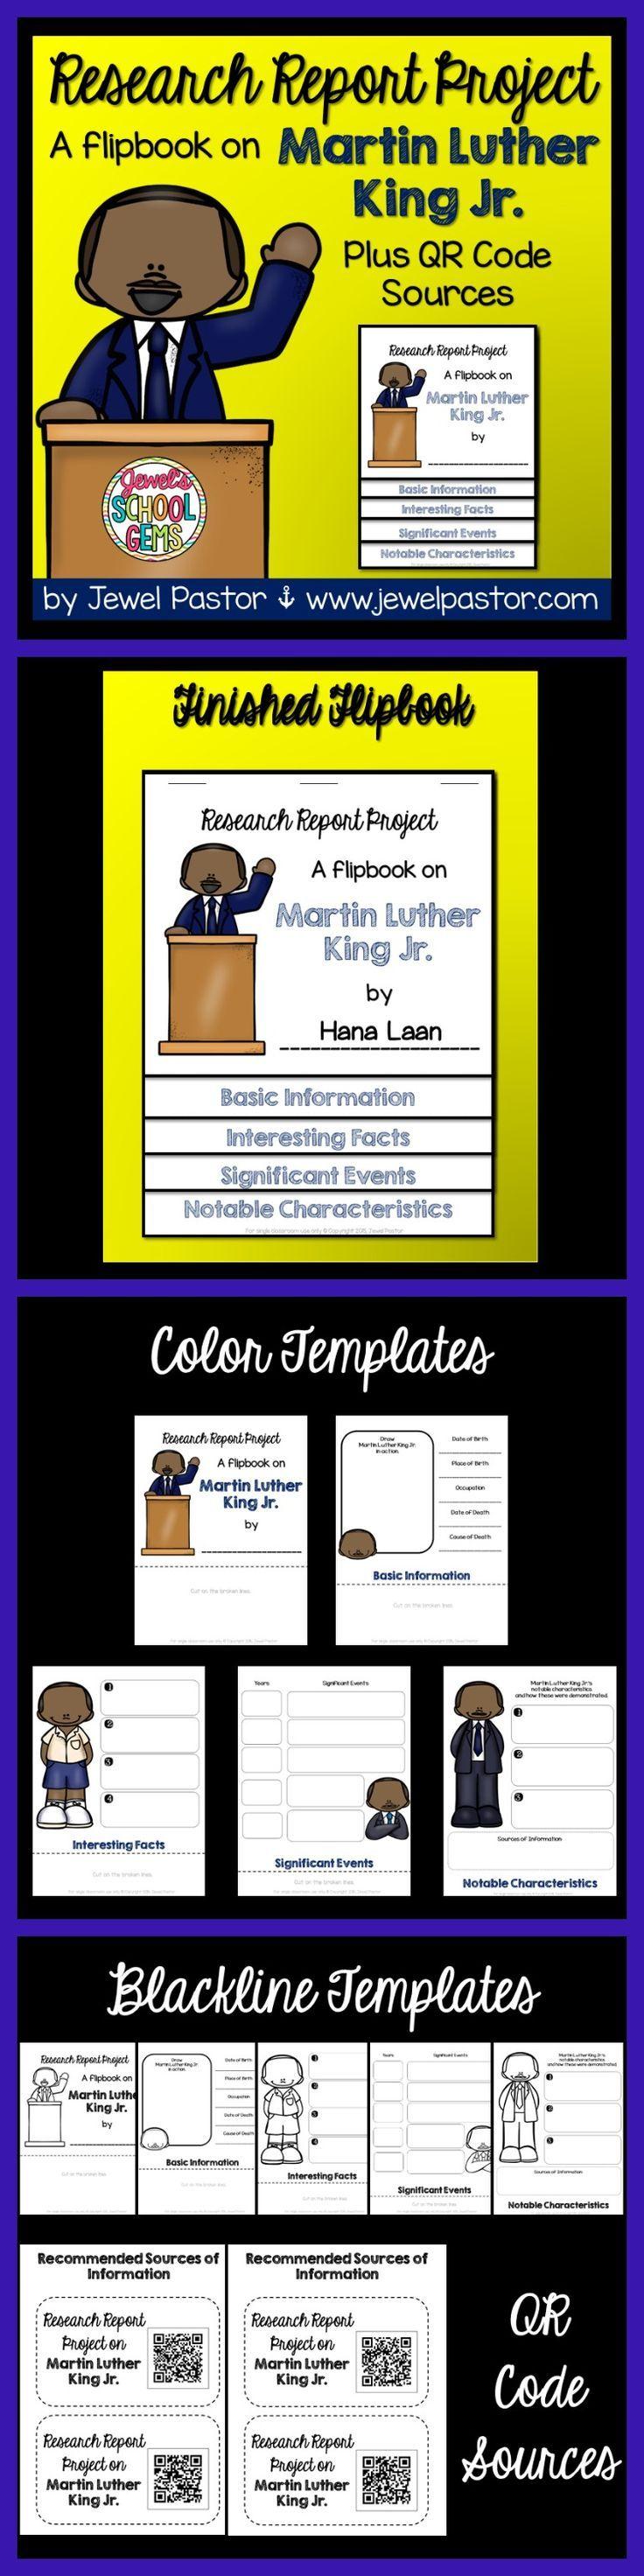 Martin Luther King : Martin Luther King Research Flipbook  MARTIN LUTHER KING JR.  This is a 15-page resource that consists of foldables/templates that can be used to create a research flipbook on the biography of Martin Luther King Jr.